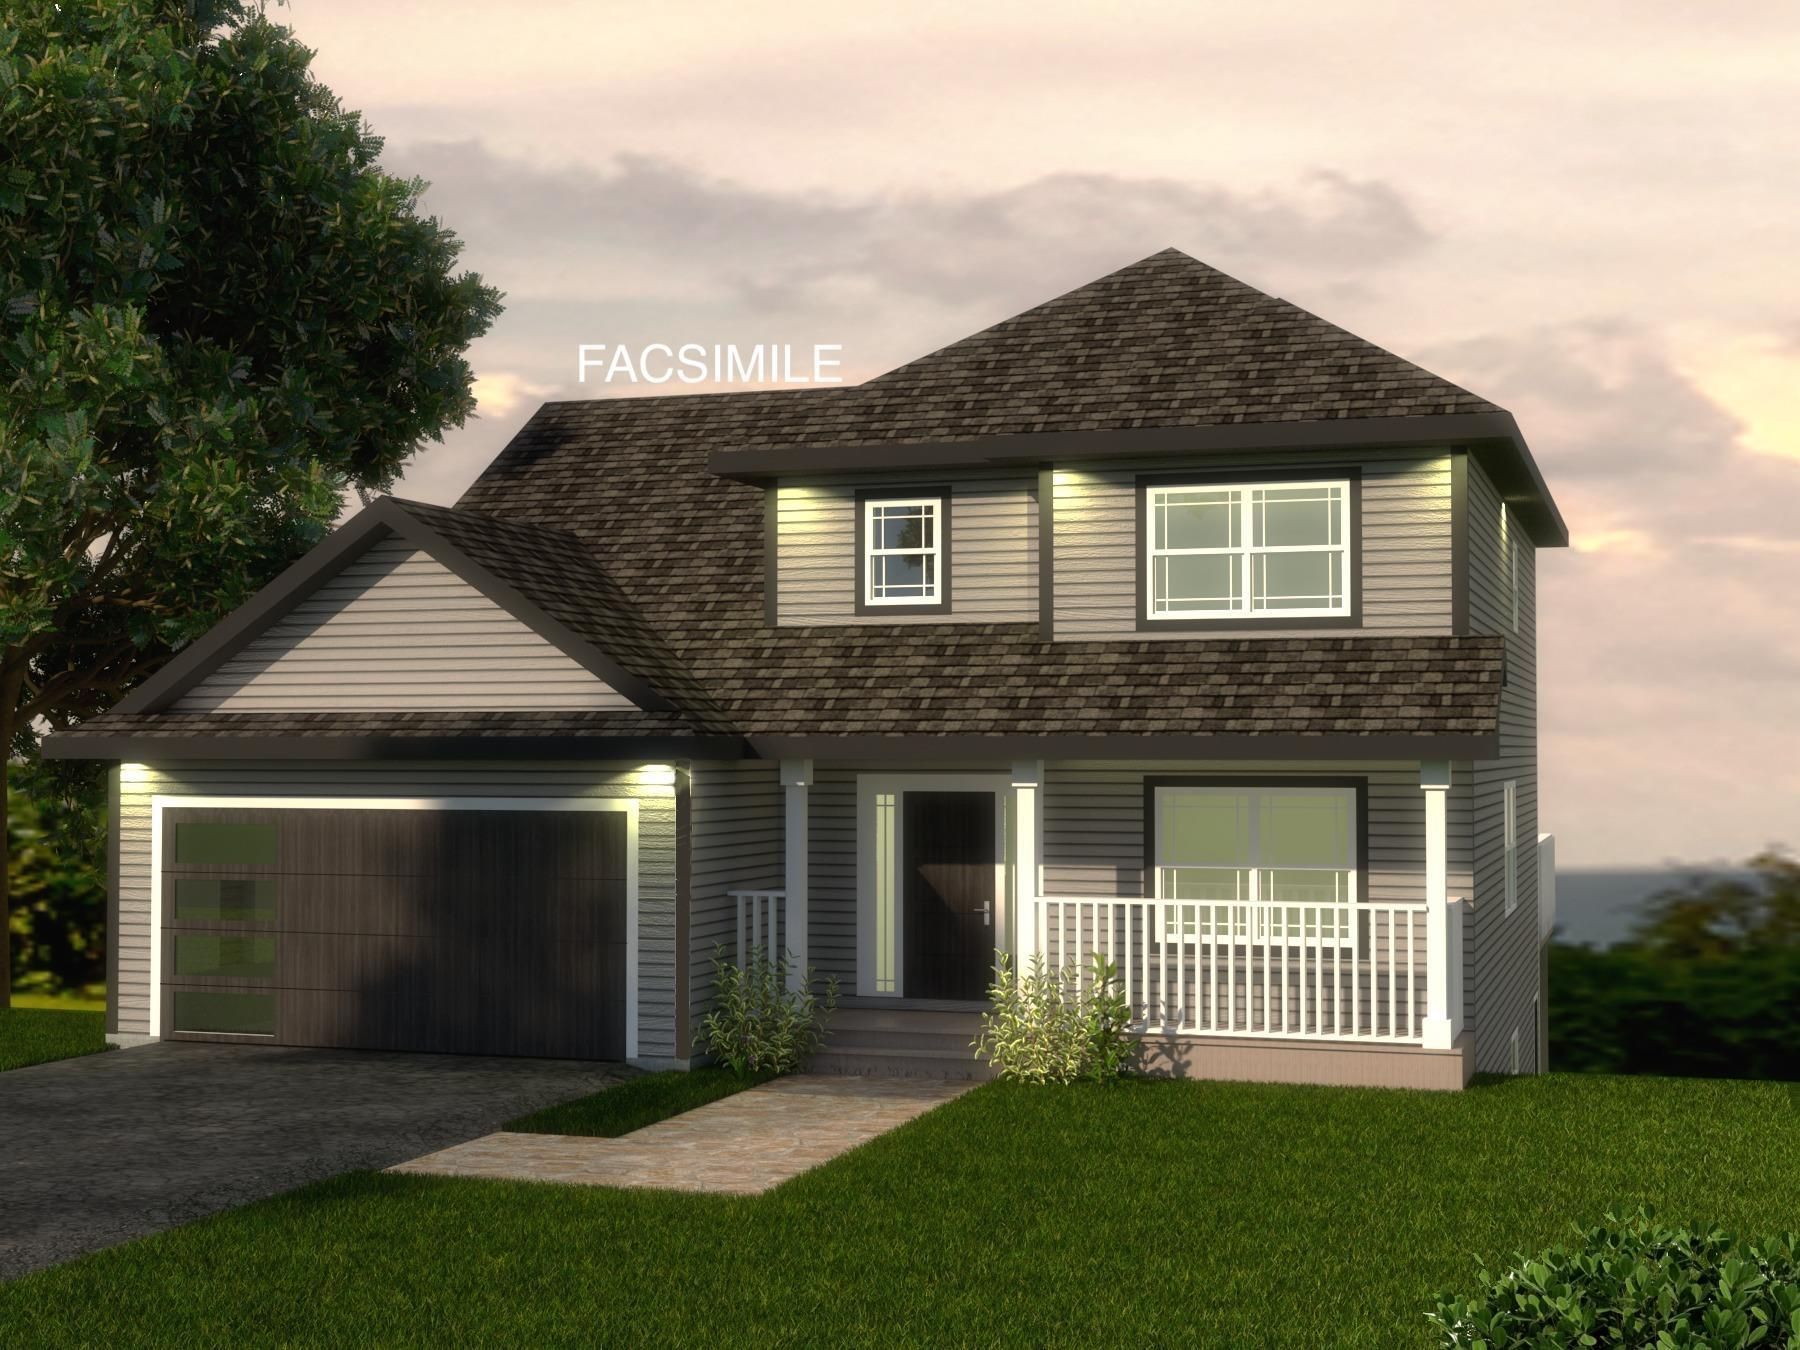 Main Photo: Lot 212A 181 Sidhu Drive in Beaver Bank: 26-Beaverbank, Upper Sackville Residential for sale (Halifax-Dartmouth)  : MLS®# 202118237